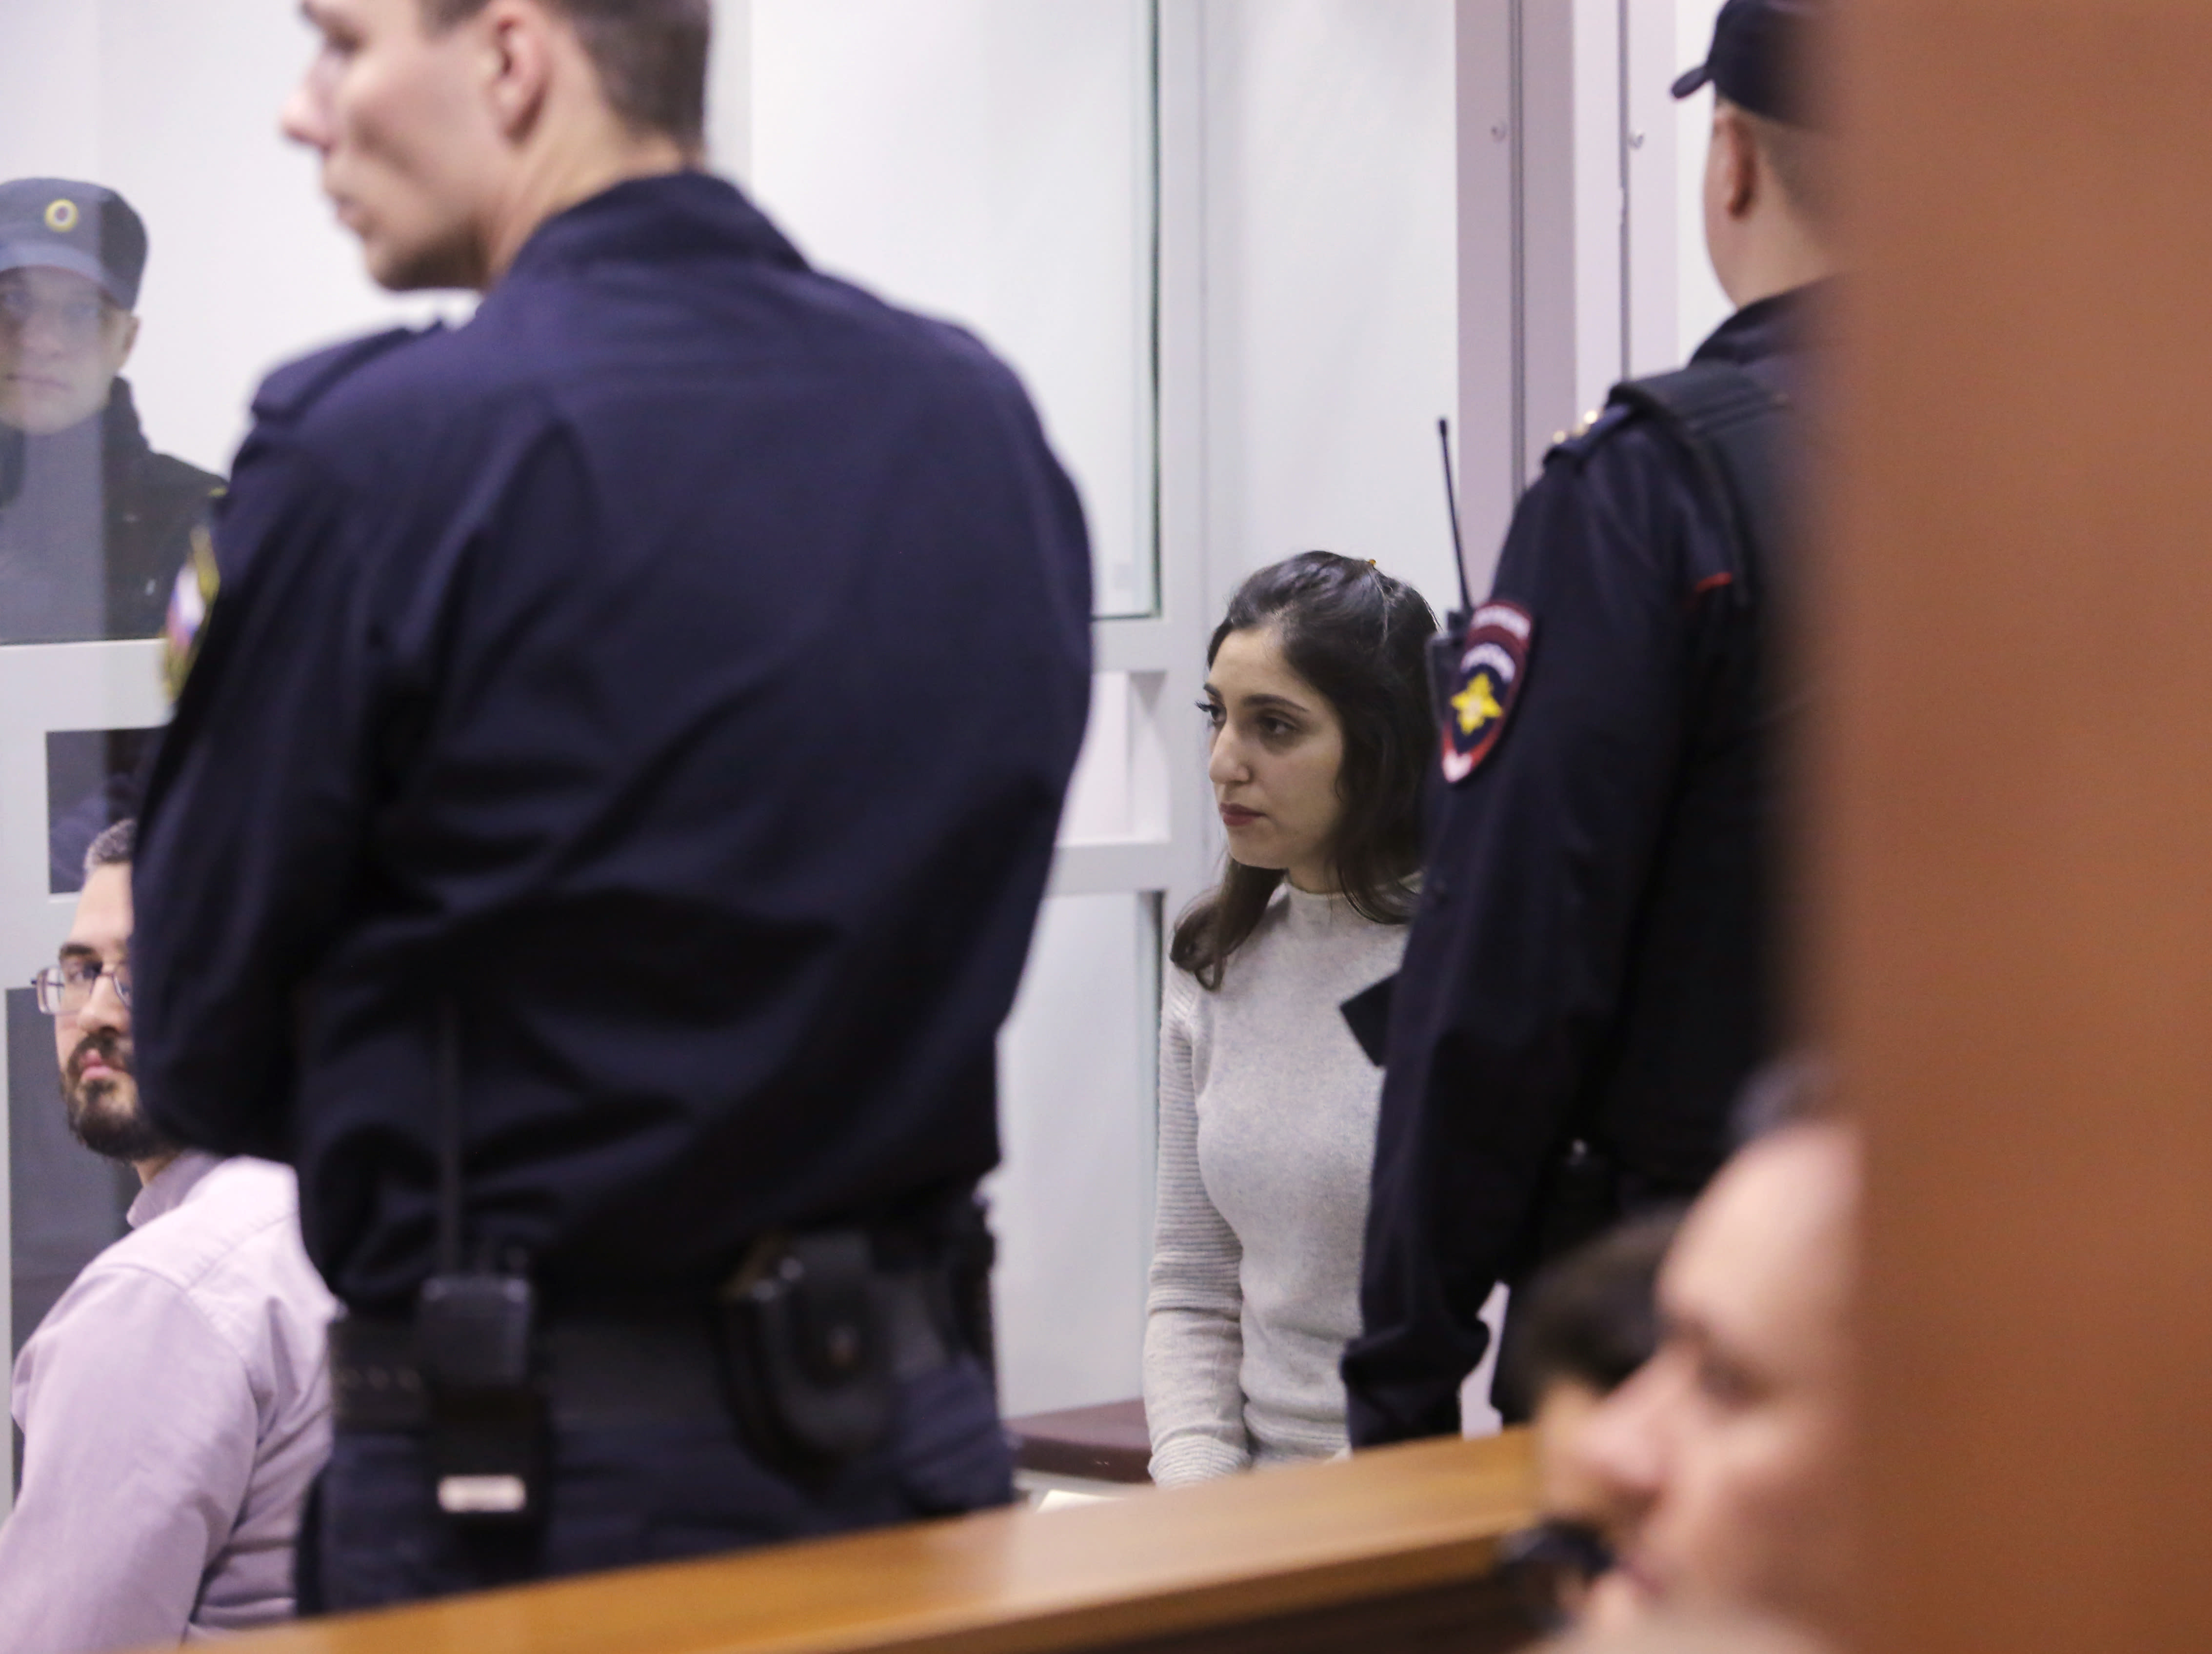 Israeli woman Naama Issachar, centre, sits inside a cage during appeal hearings in a courtroom in Moscow, Russia, Thursday, Dec. 19, 2019. Naama was sentenced in October to seven and a half years in prison for drug smuggling after authorities in April found nine grams of marijuana in her luggage. (AP Photo/Alexander Zemlianichenko Jr.)